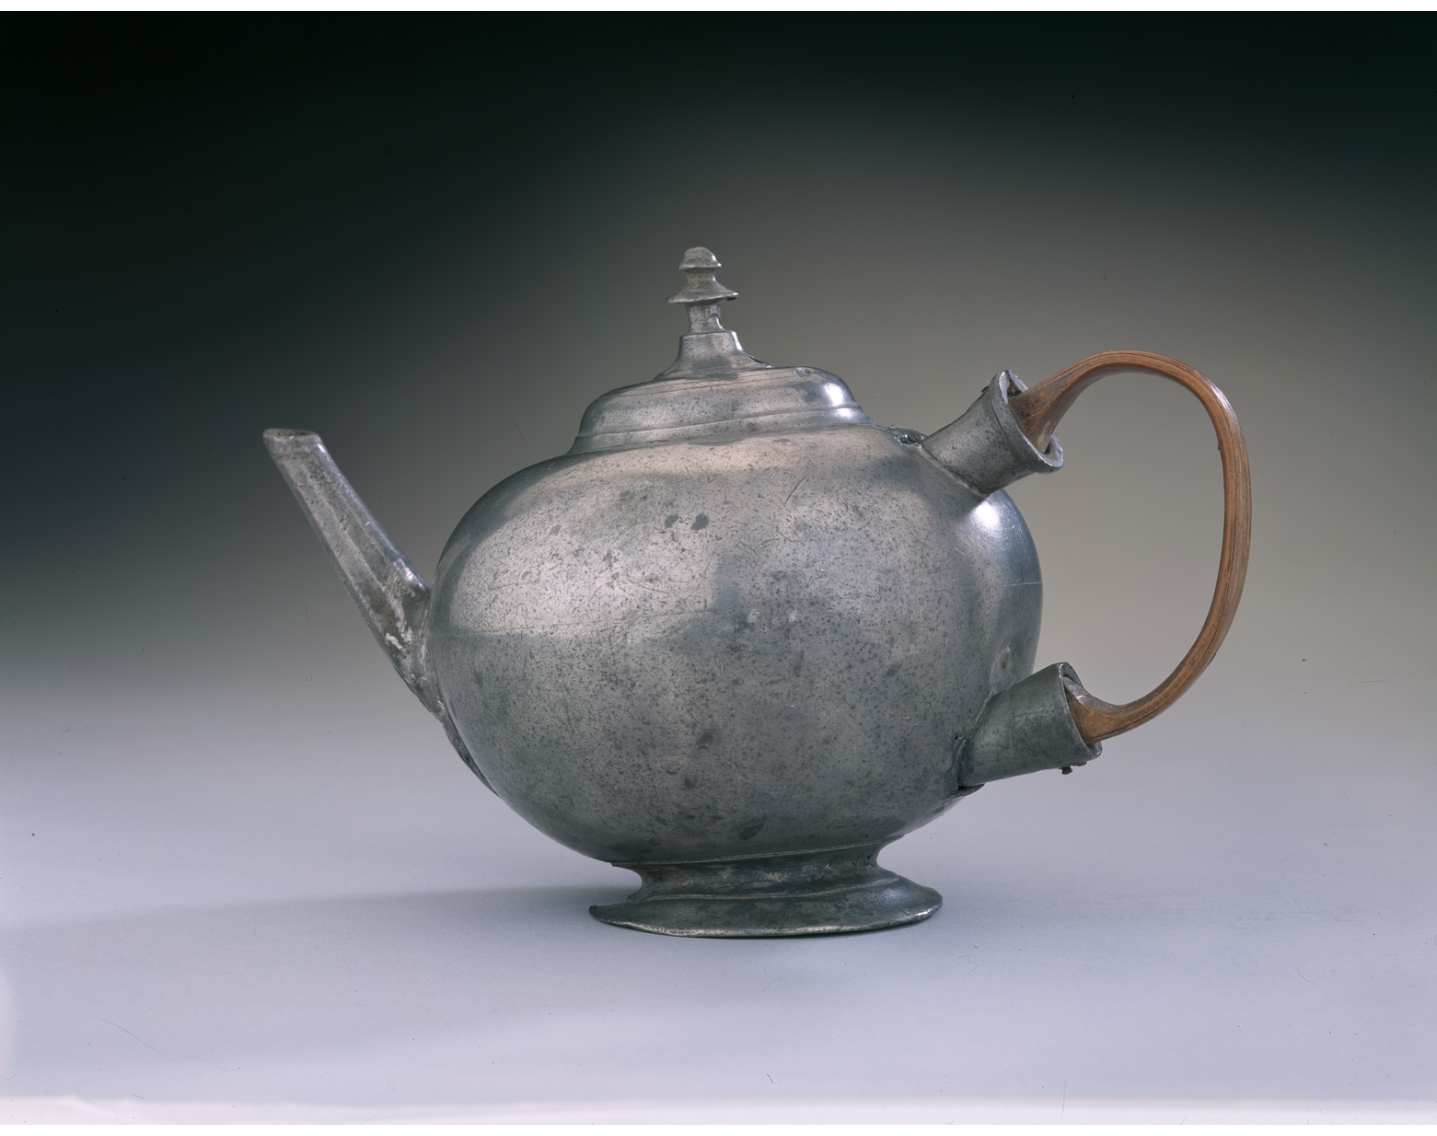 Small round, ball-shaped teapot with domed, hinged lid with ornament on top; globular makeshift wooden handle, straight spout.